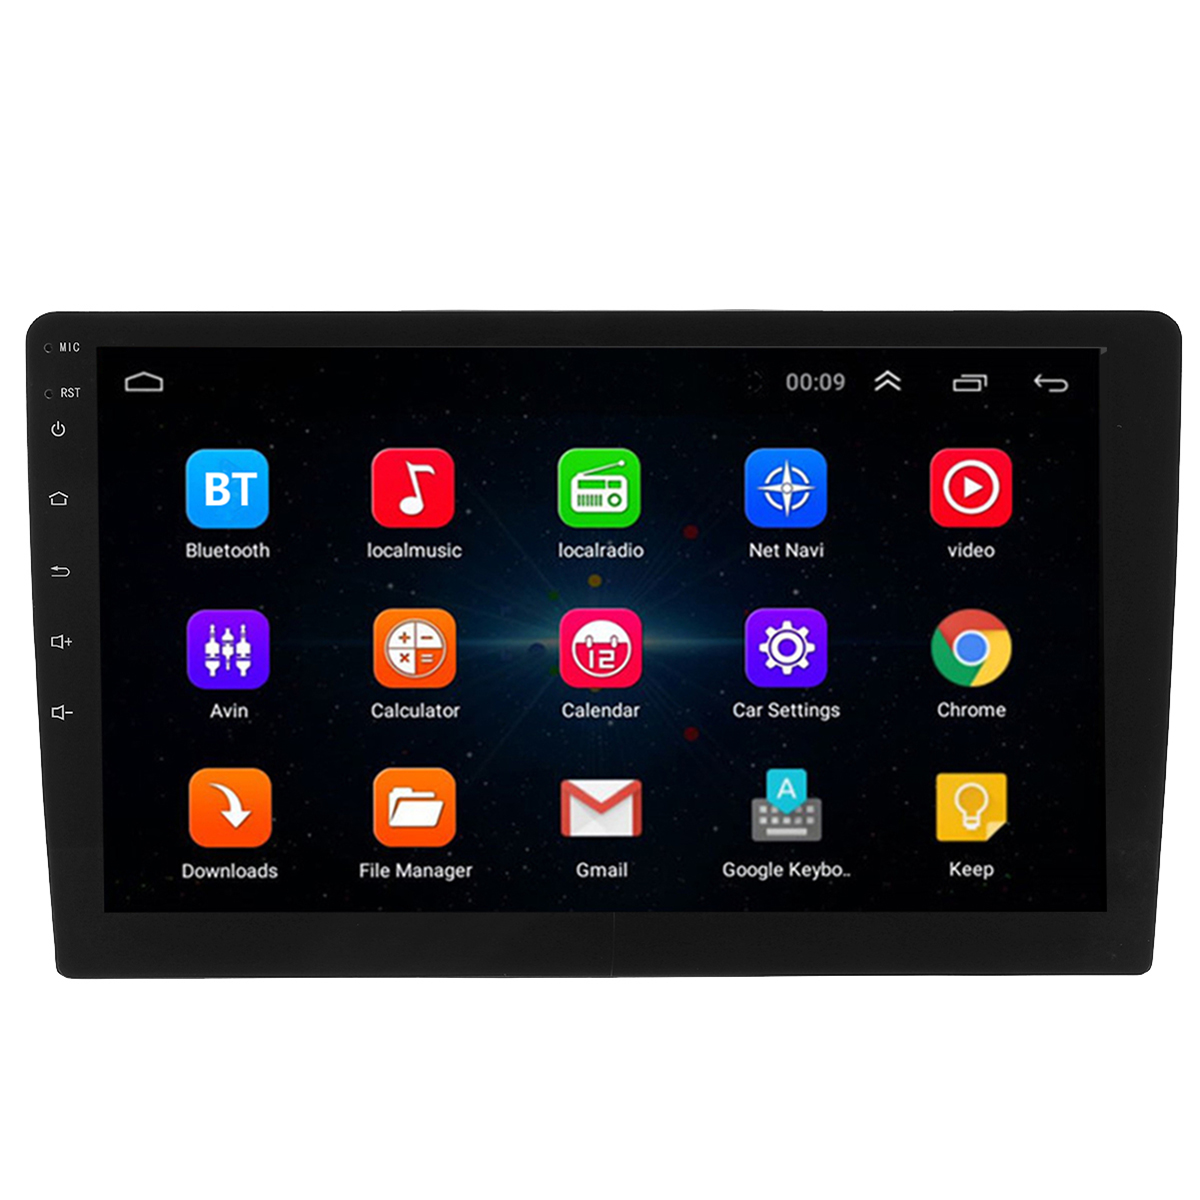 10.1 Inch 2 DIN for Android 8.0 Car Stereo Radio Quad Core 1+32G